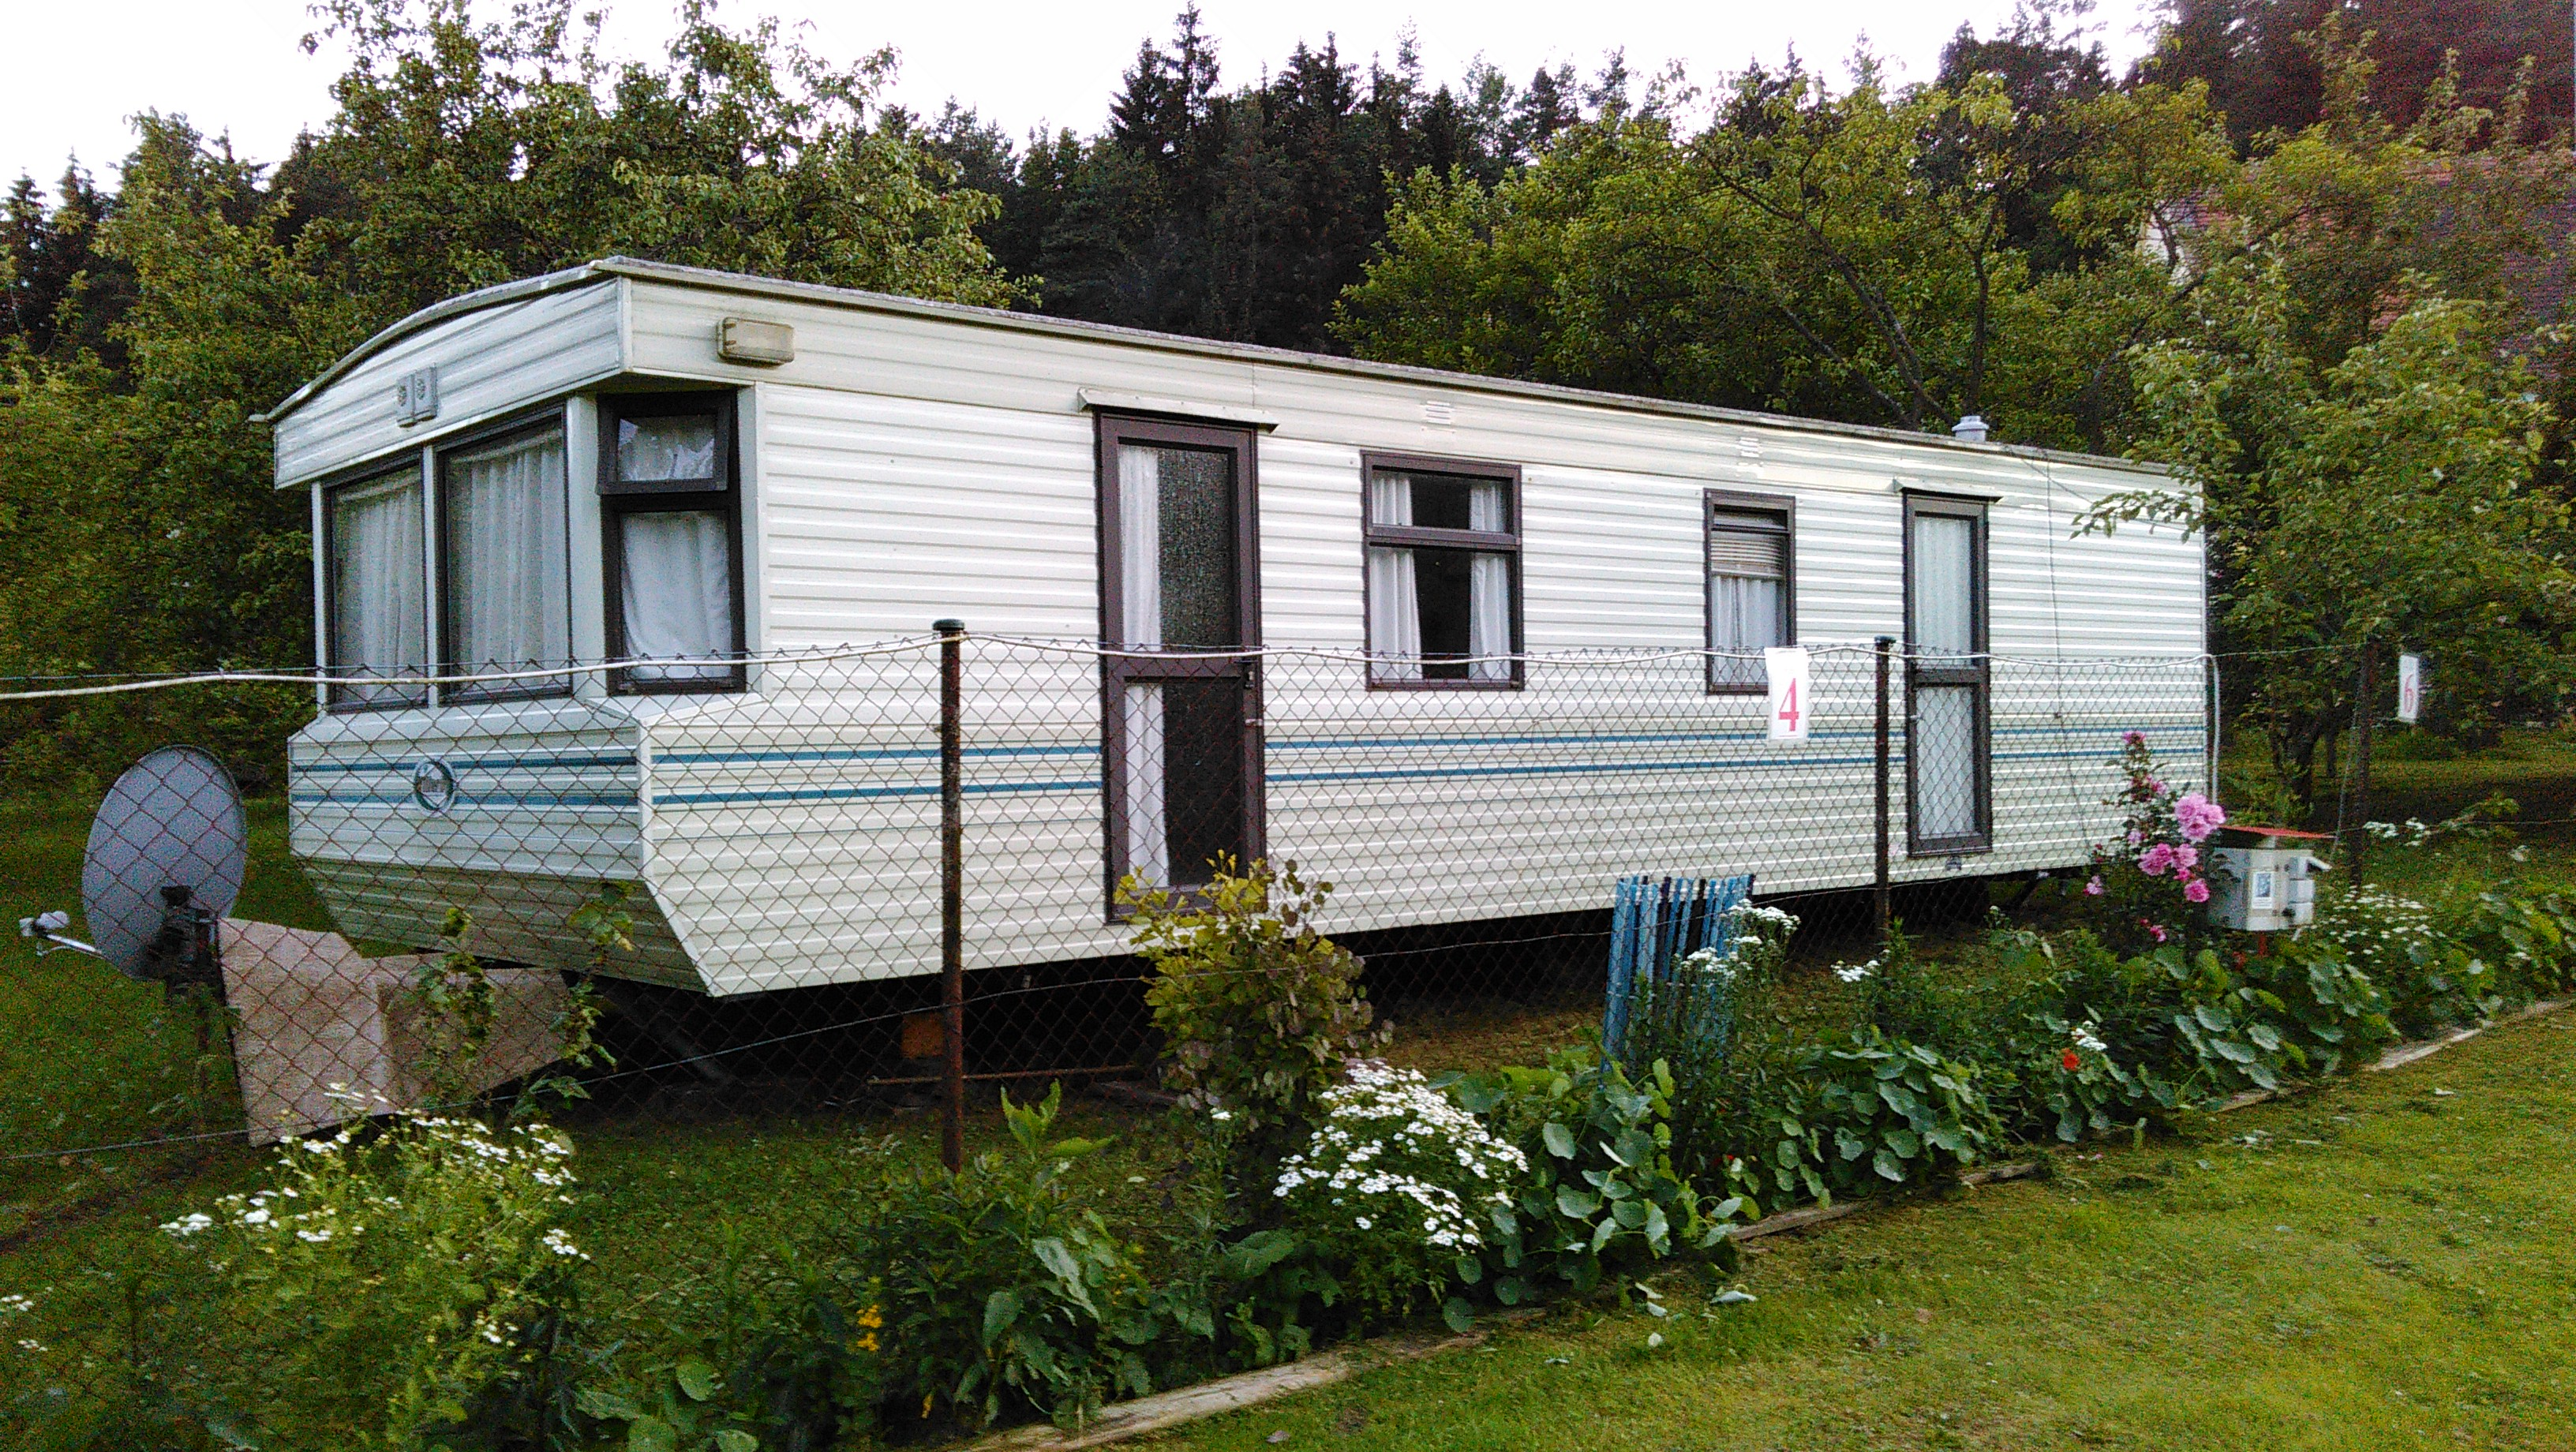 Mobile home | Autokemp Paradijs - Český Krumlov on camping cars, camping parks, camping fences, camping sheds, rv park model homes, camping tents, camping photography, camping at home, camping trailers, camping nursery mobile,